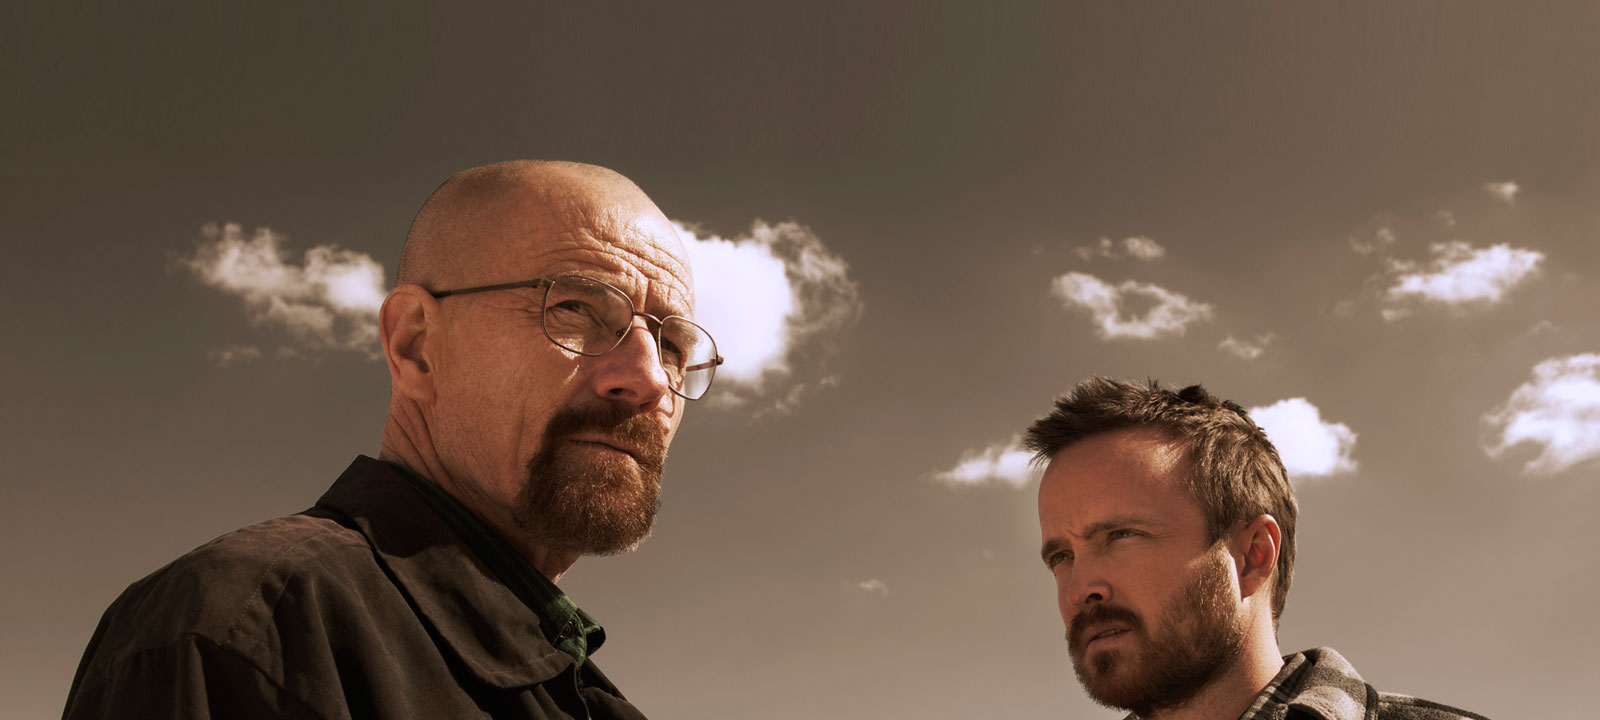 The Breaking Bad Spin-Off/Sequel Movie Has Wrapped.